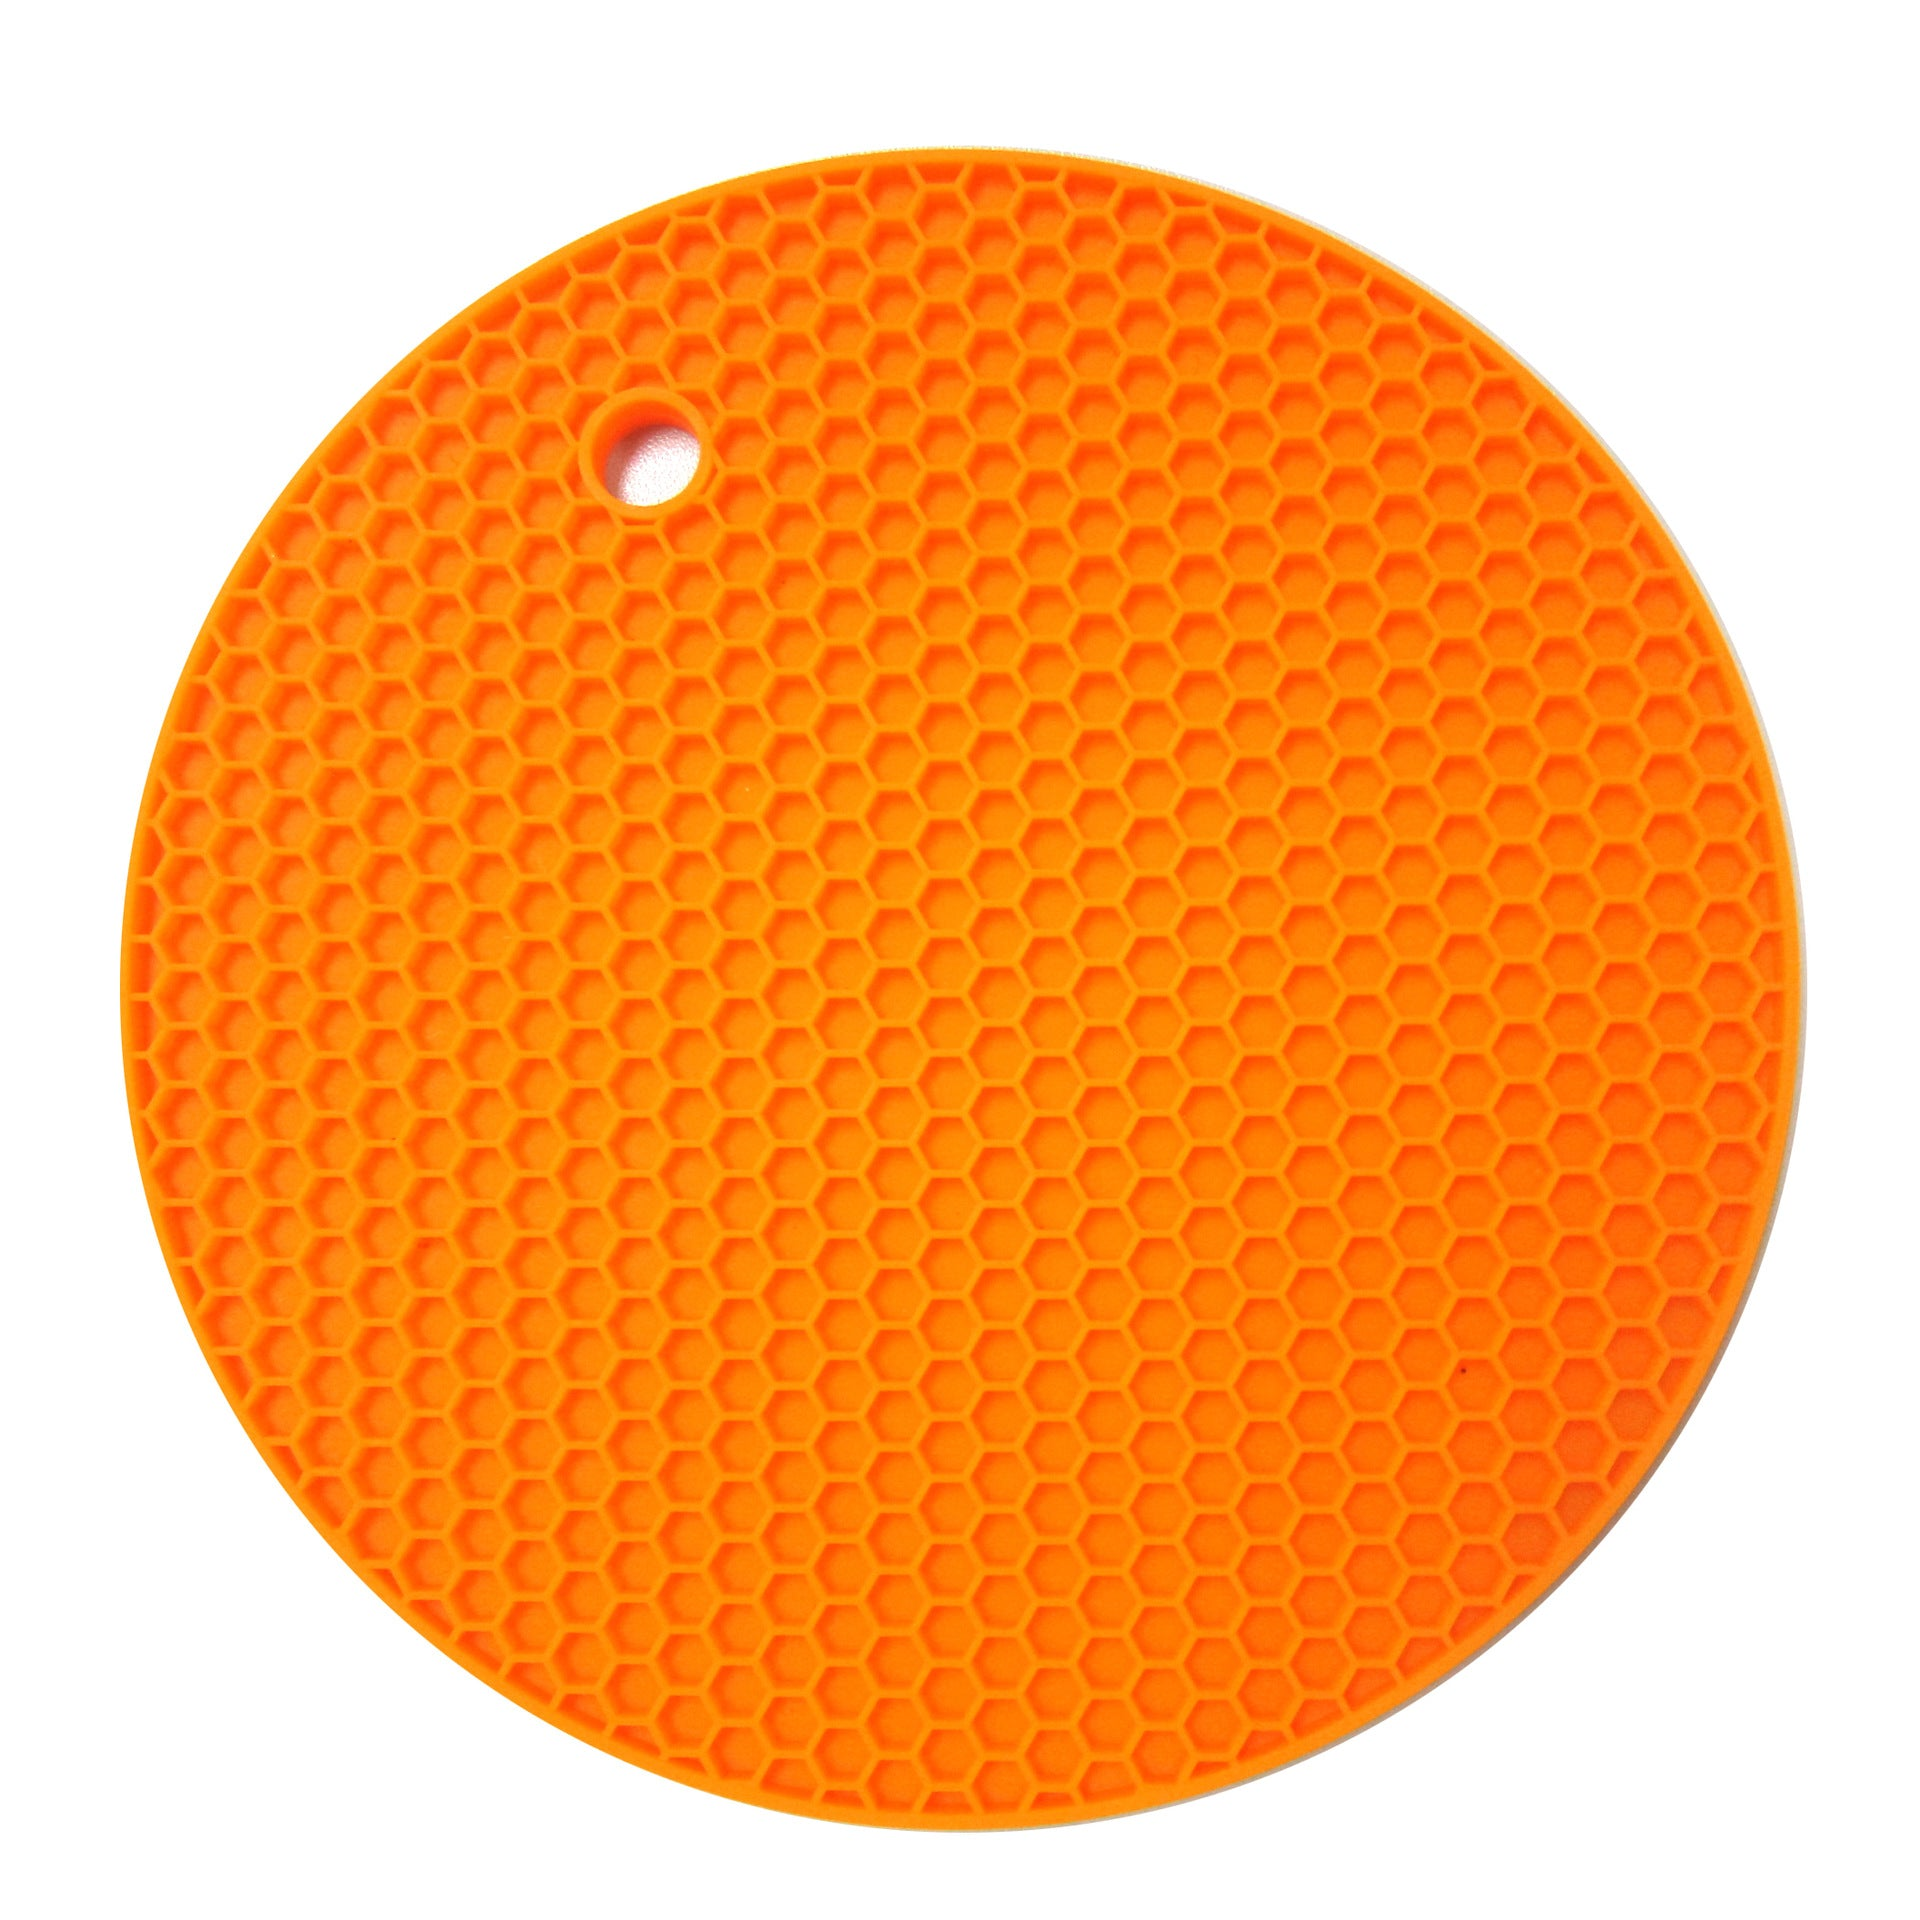 product resistant slip colors holder dhgate from placemat coaster durable silicone non mats new assorted round mat heat cushion com pot